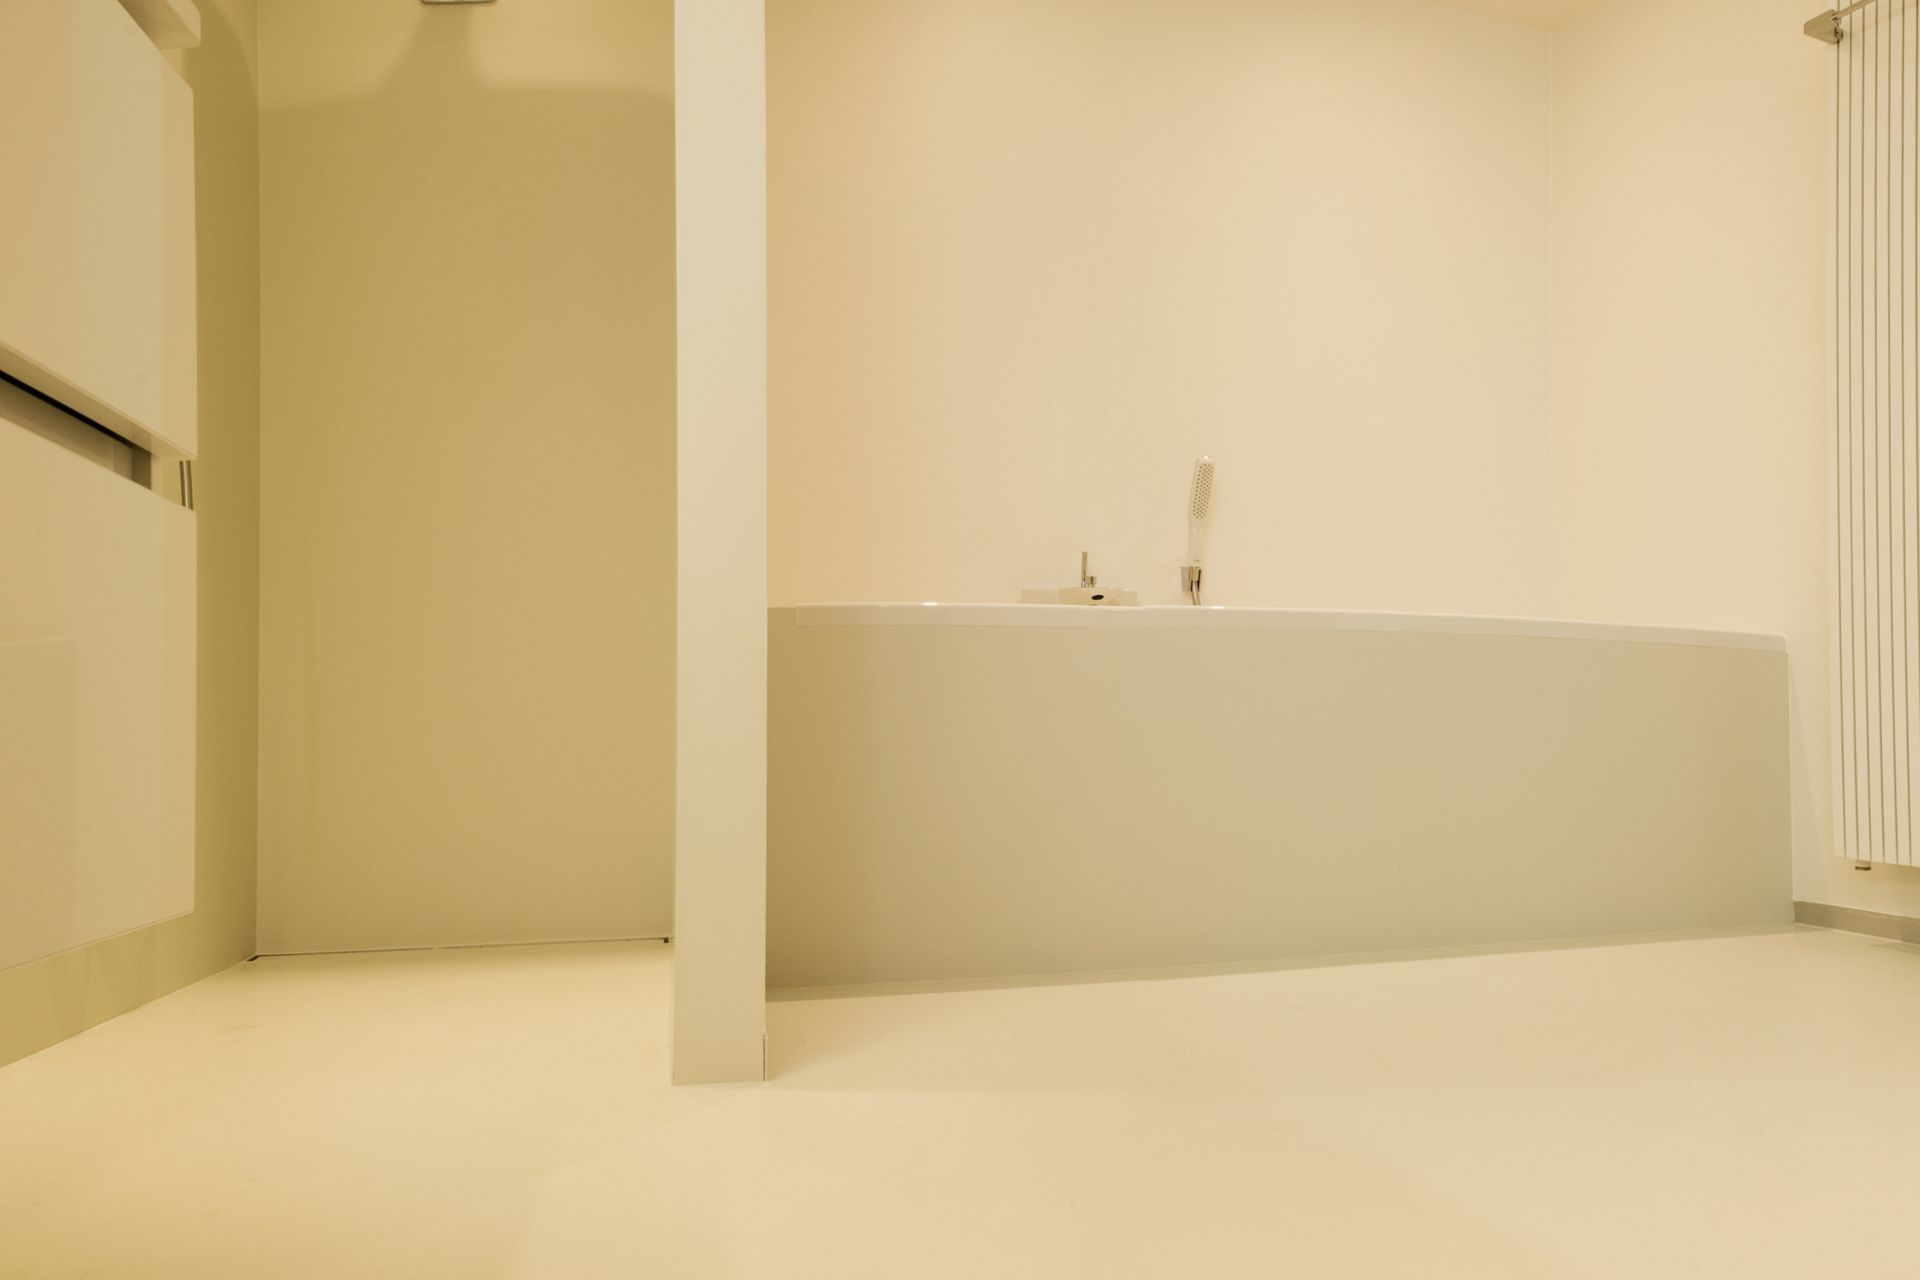 Sika ComfortFloor® beige floor in modern bathroom shower bathtub